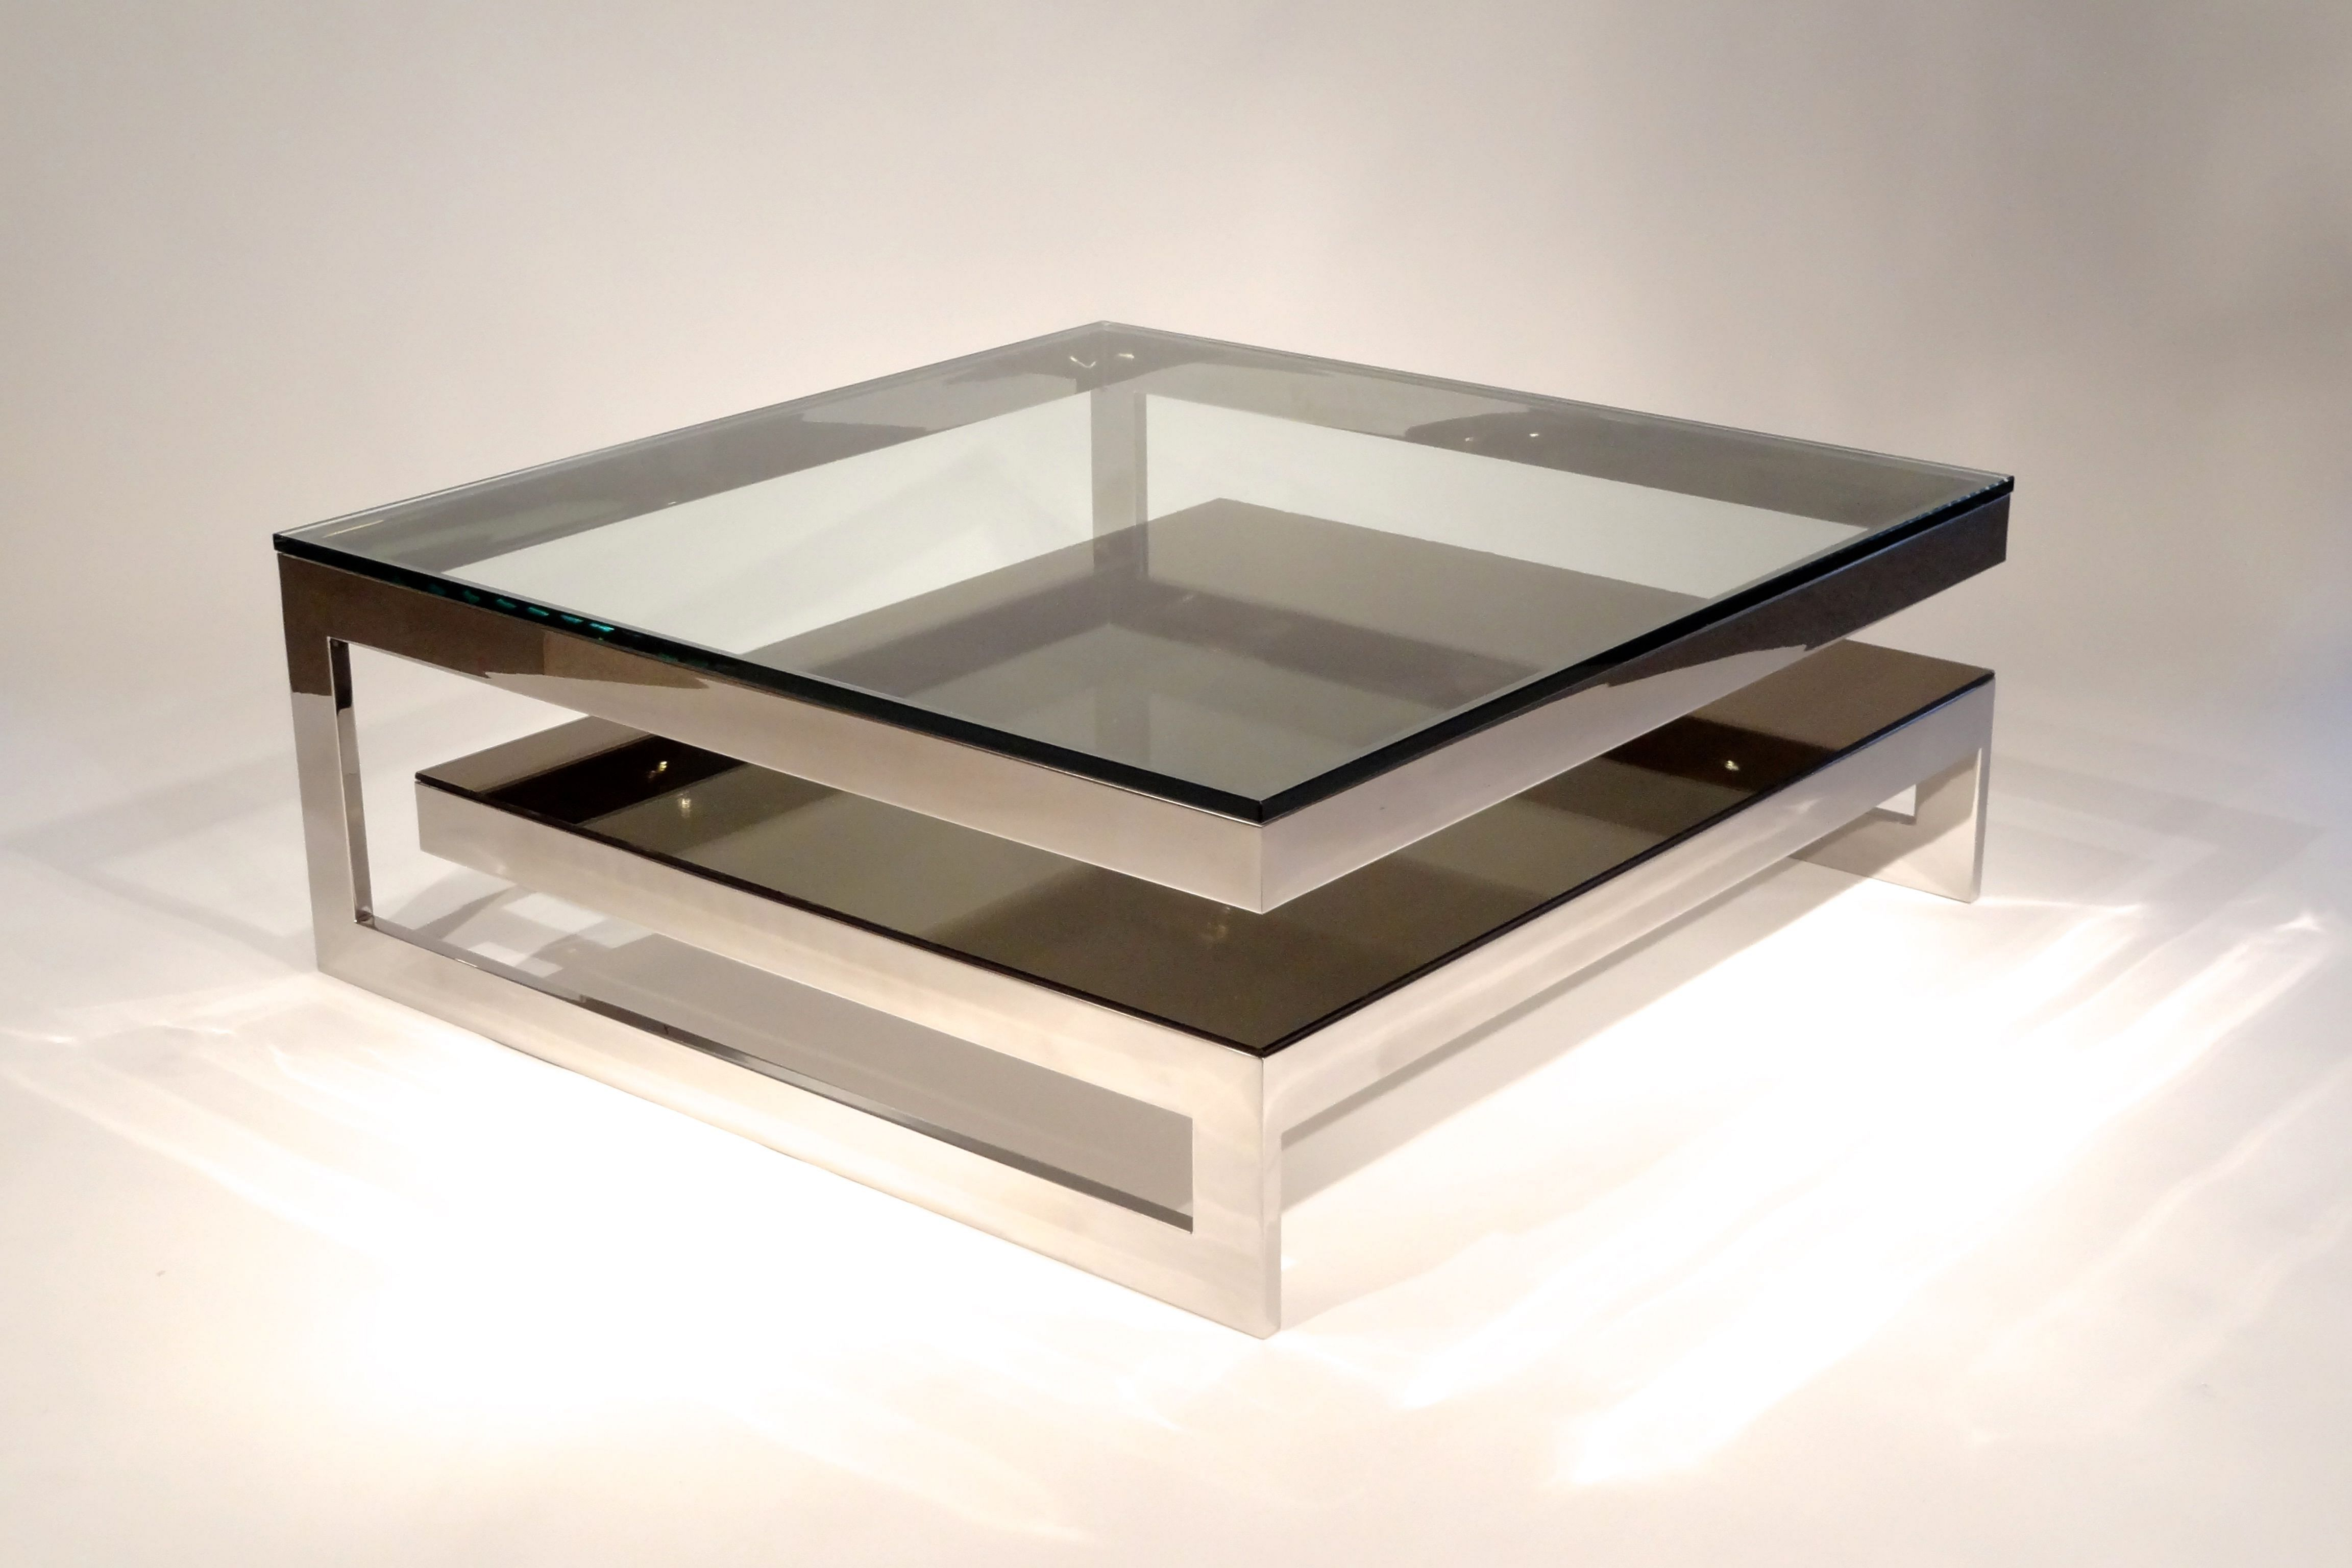 Impressive 30 Coffee Table Design For Your Living Room With